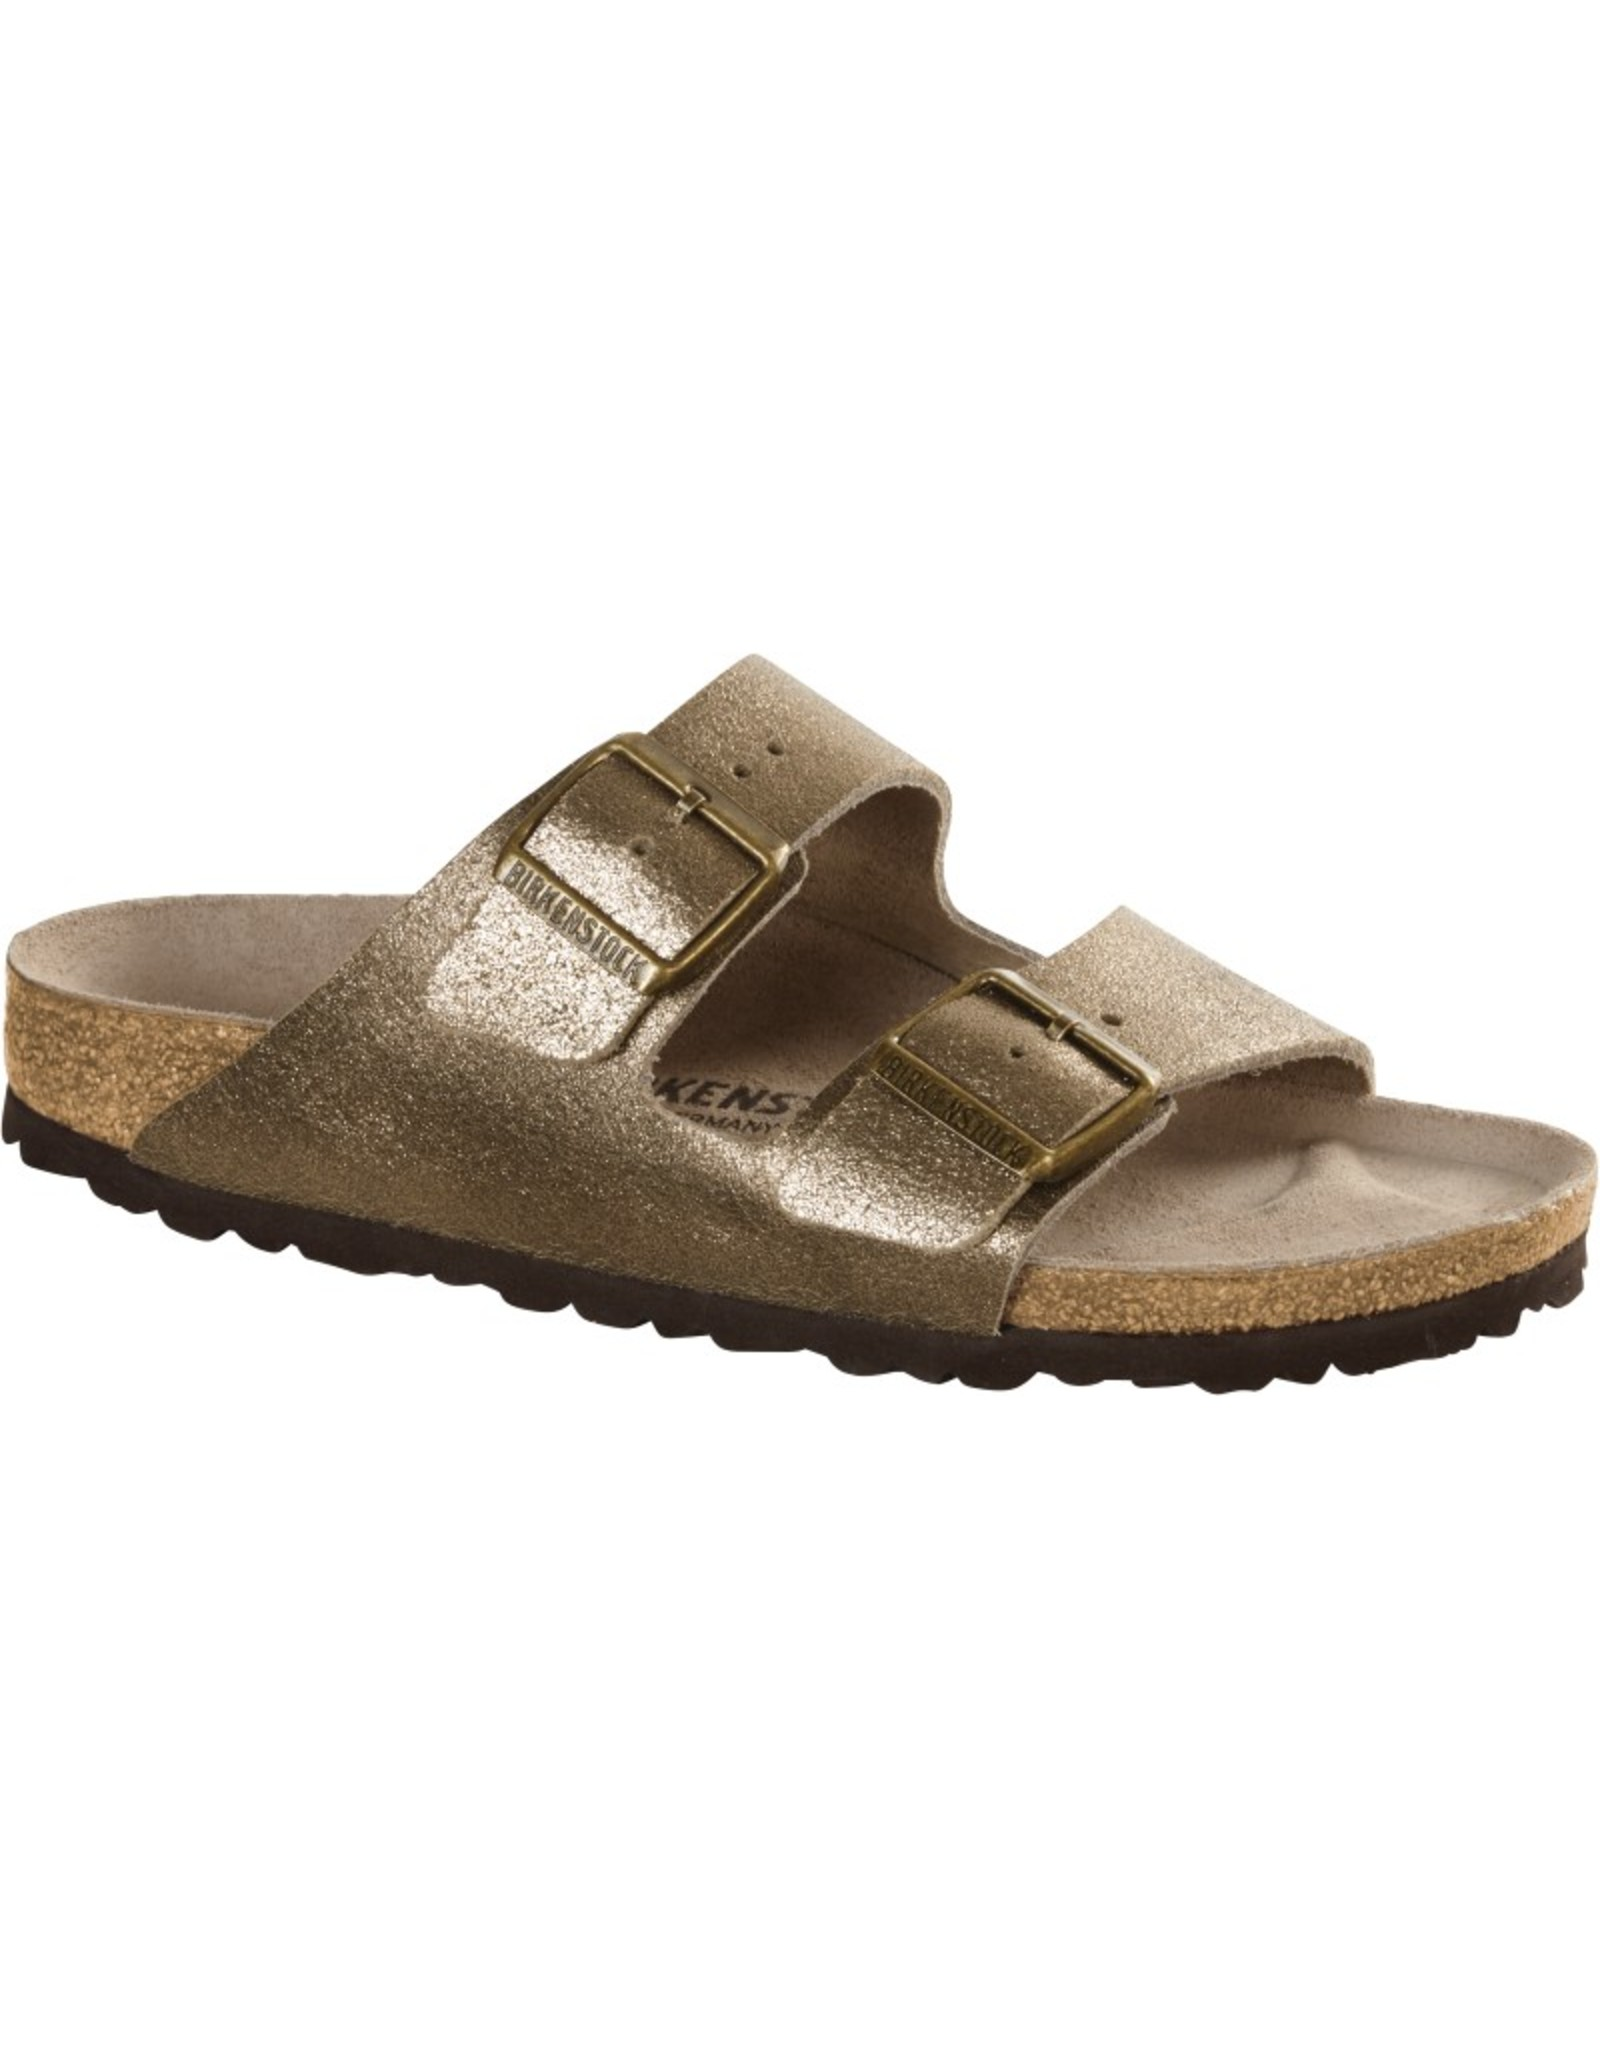 Birkenstock Arizona Washed Metallic Gold Leather Sandal